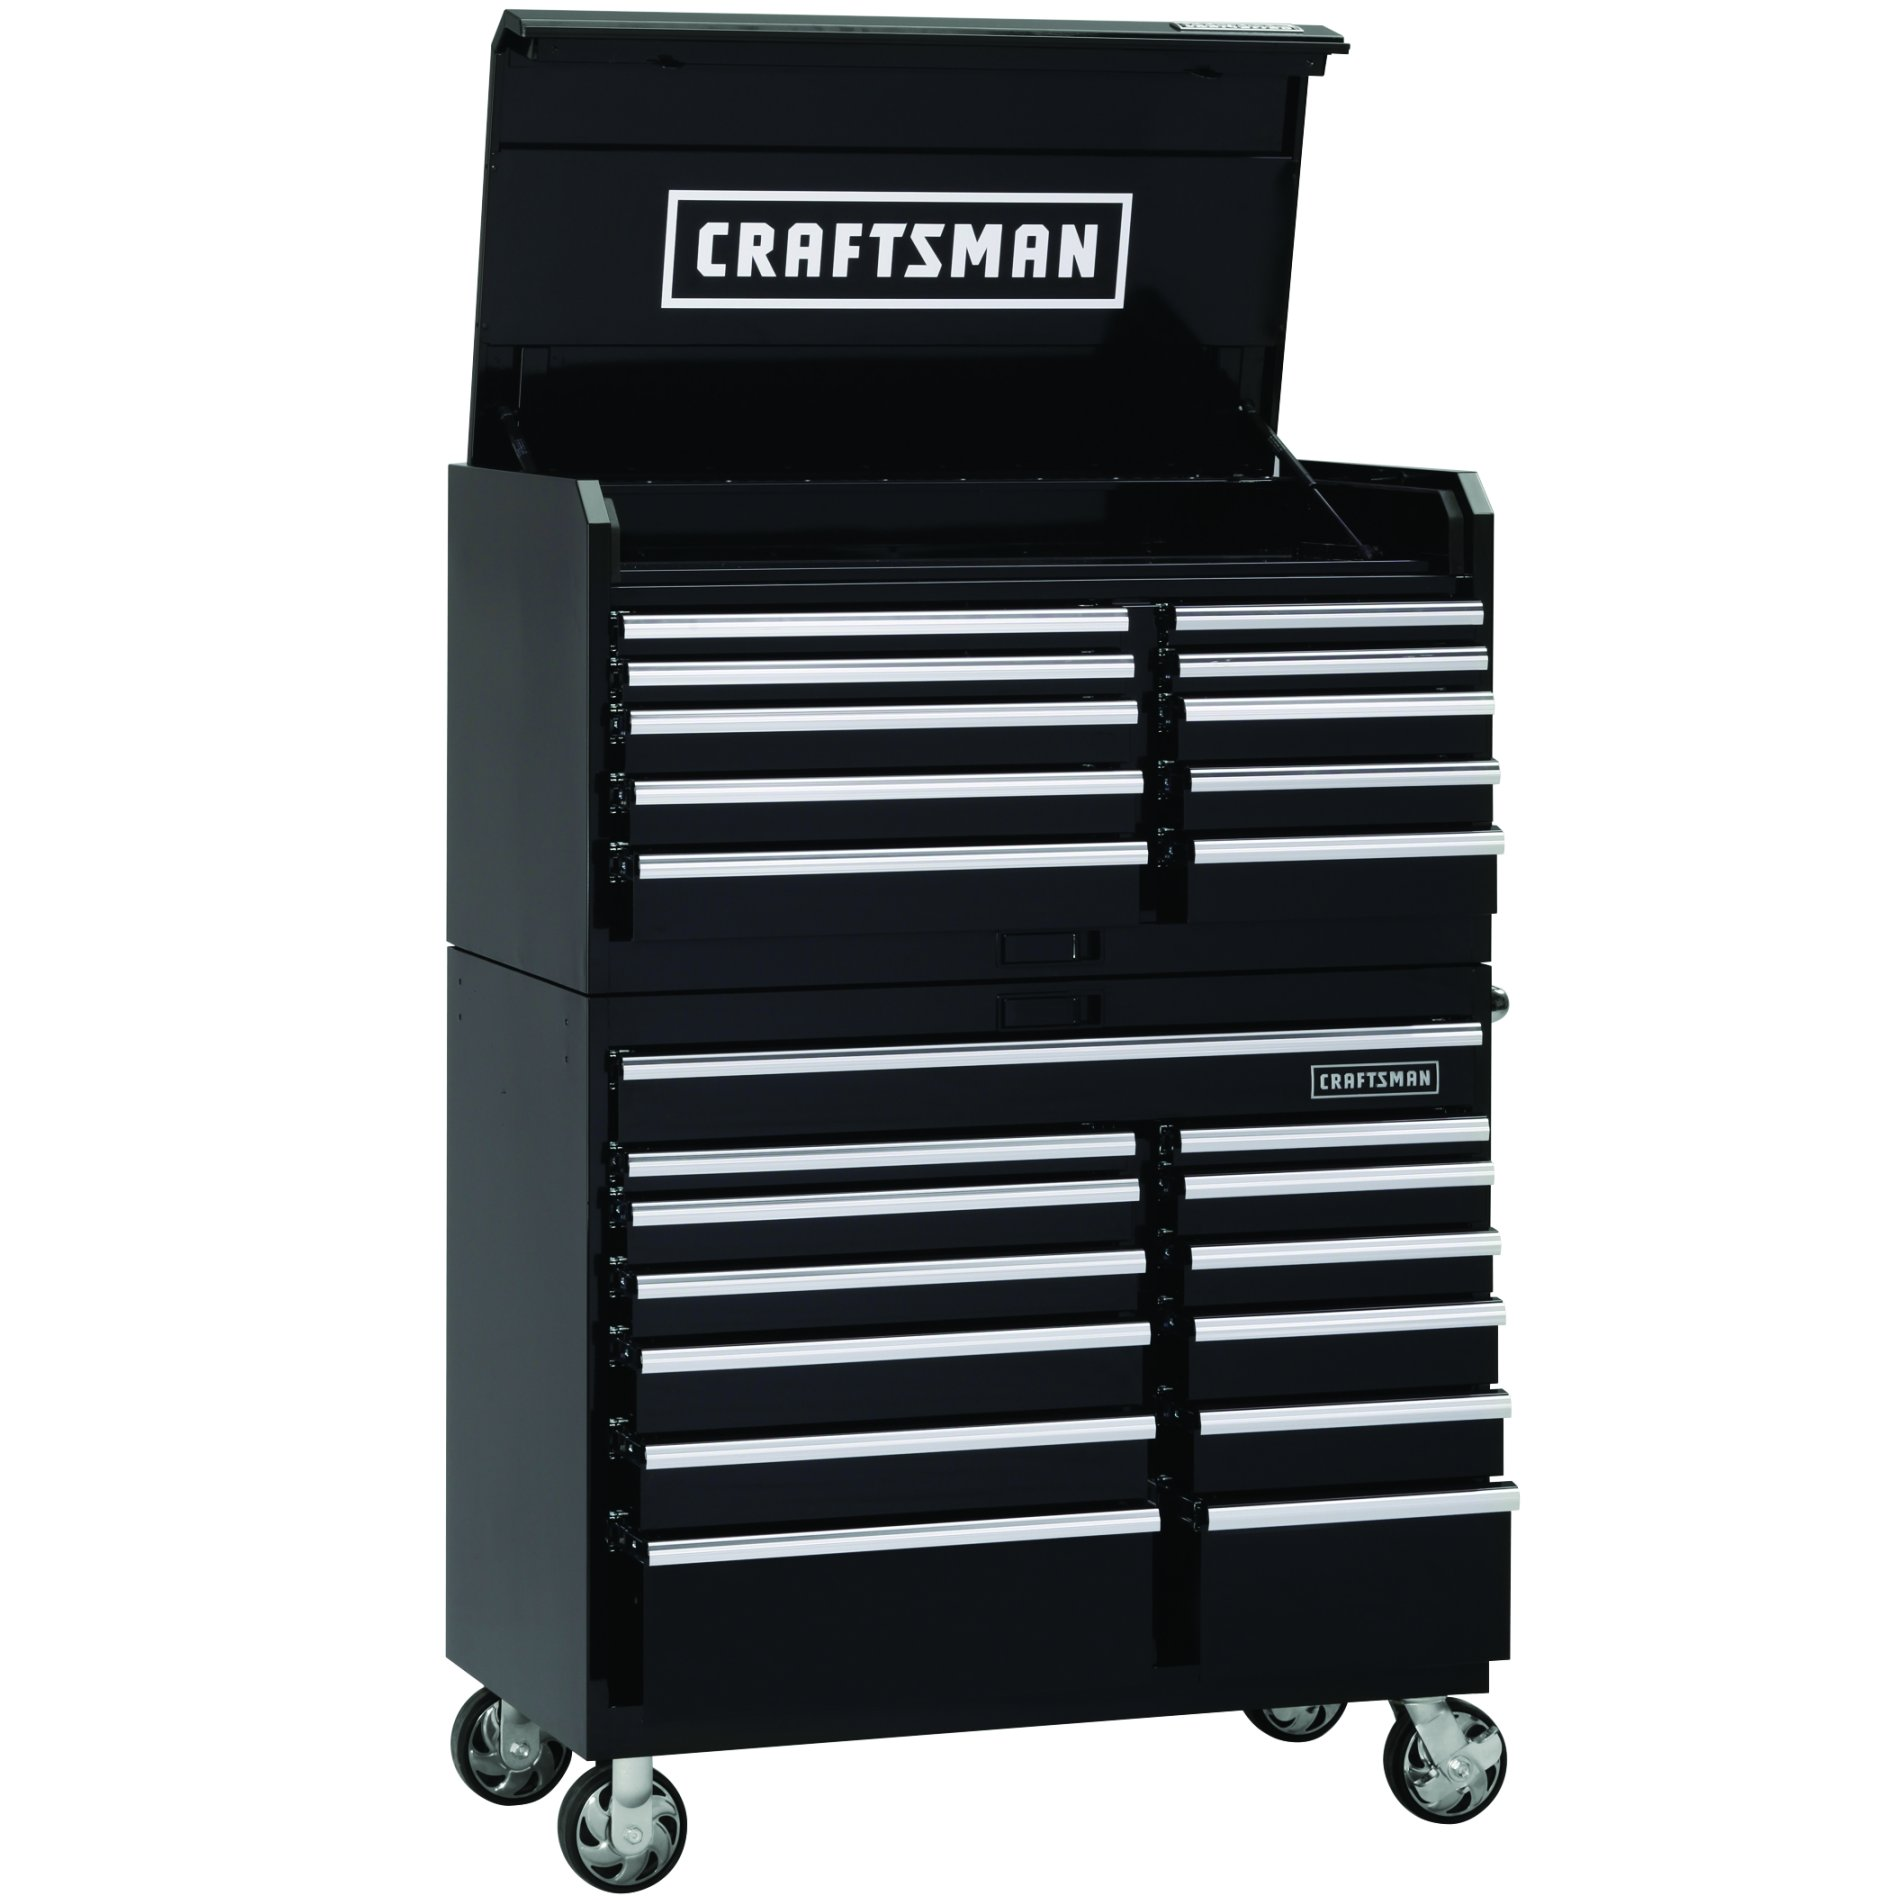 "Craftsman 46"" Wide 13-Drawer Industrial Grade Tool Cart"